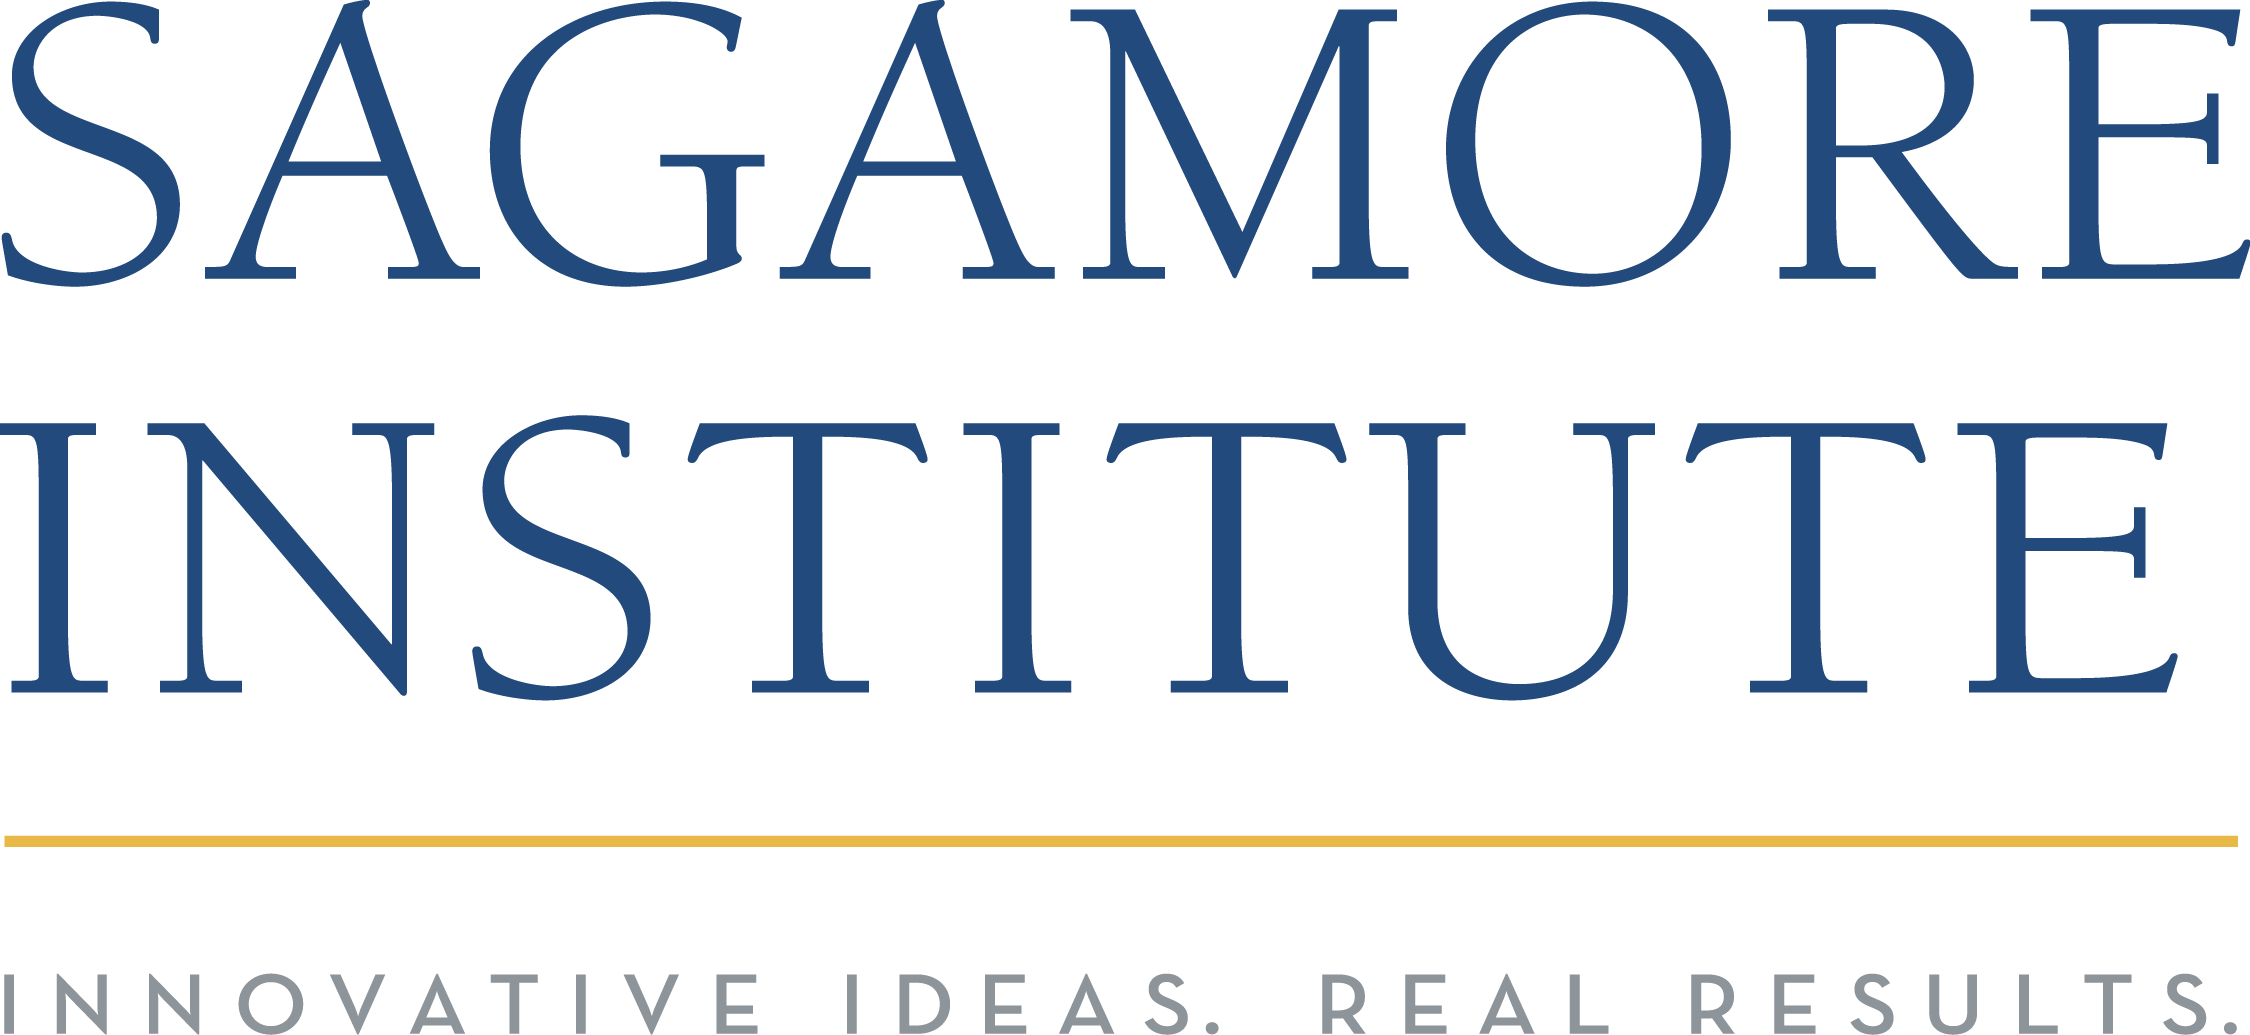 Sagamore-Logo-Primary-Color.png